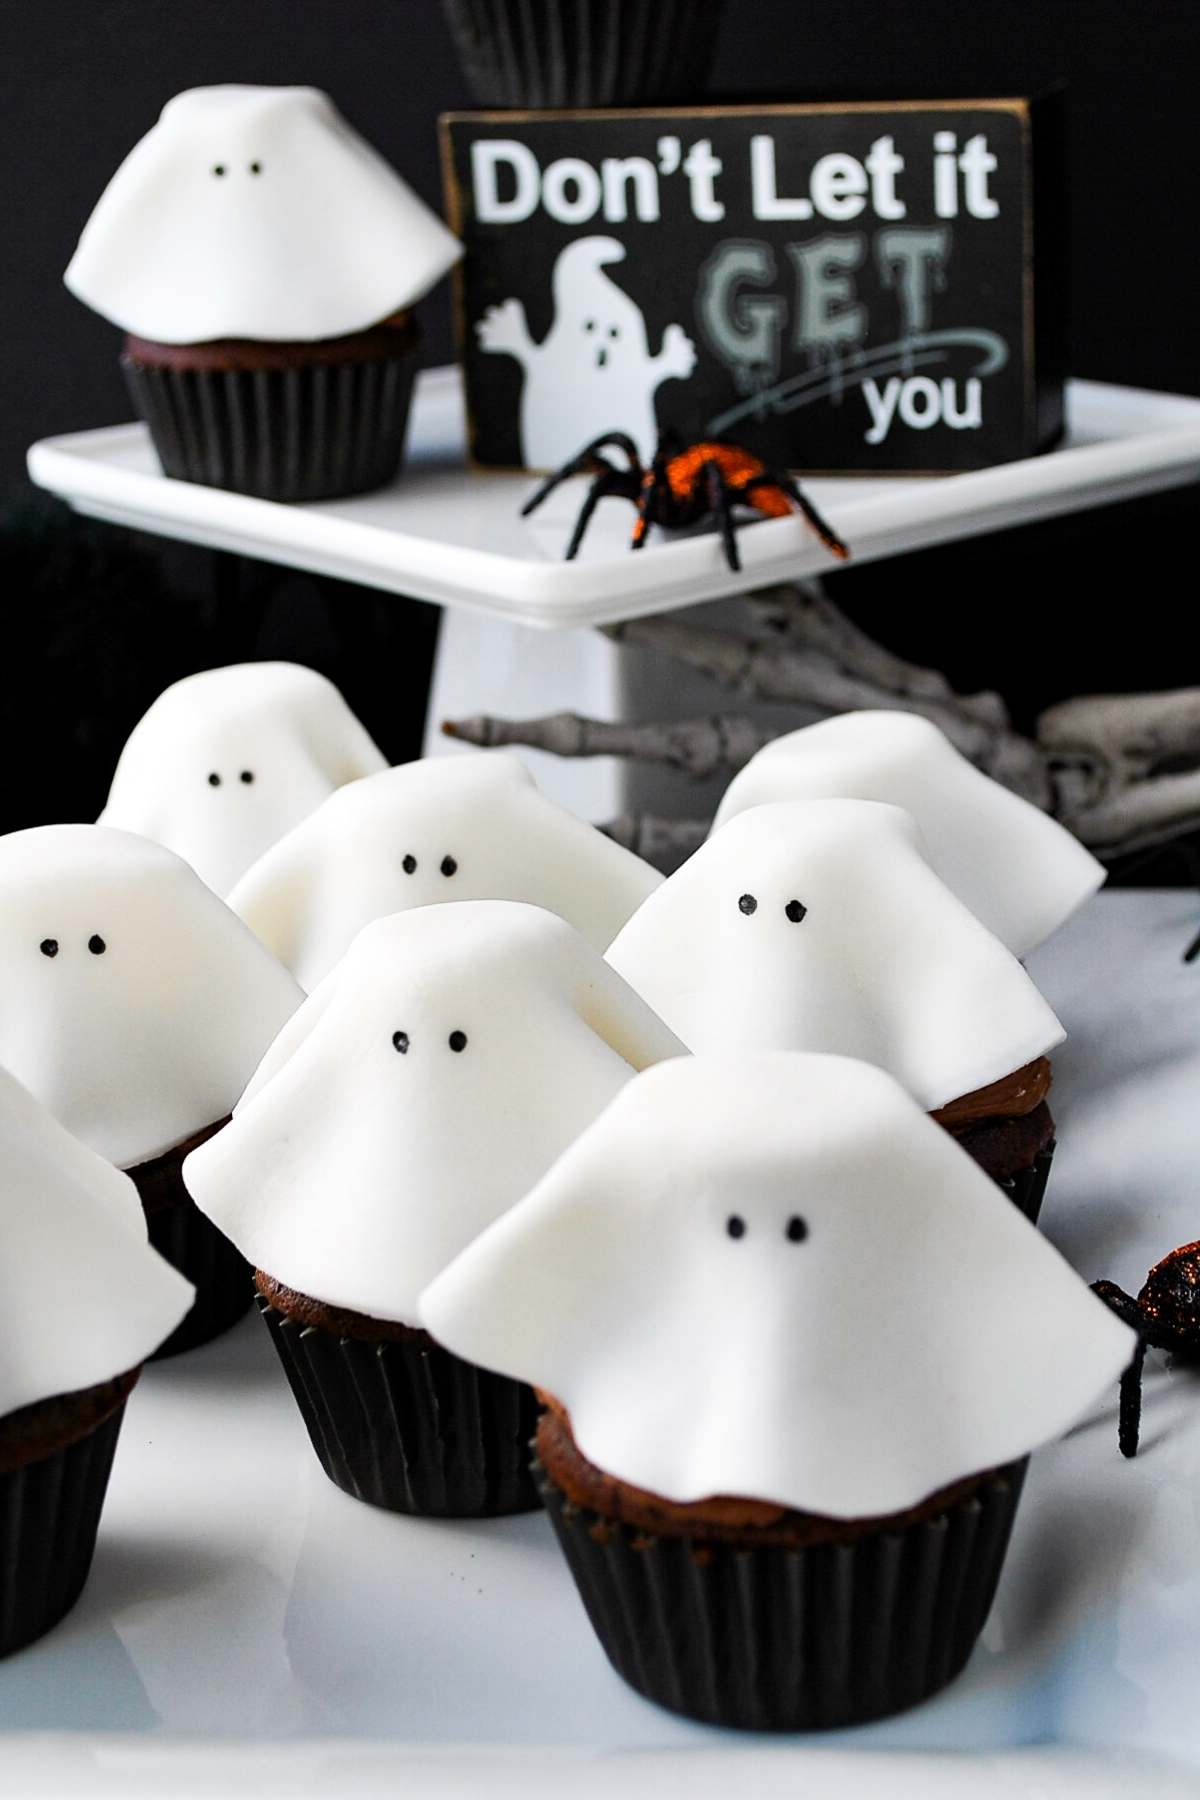 """ghost cupcakes on a serving tray with a """"don't let it get you"""" sign in the background"""